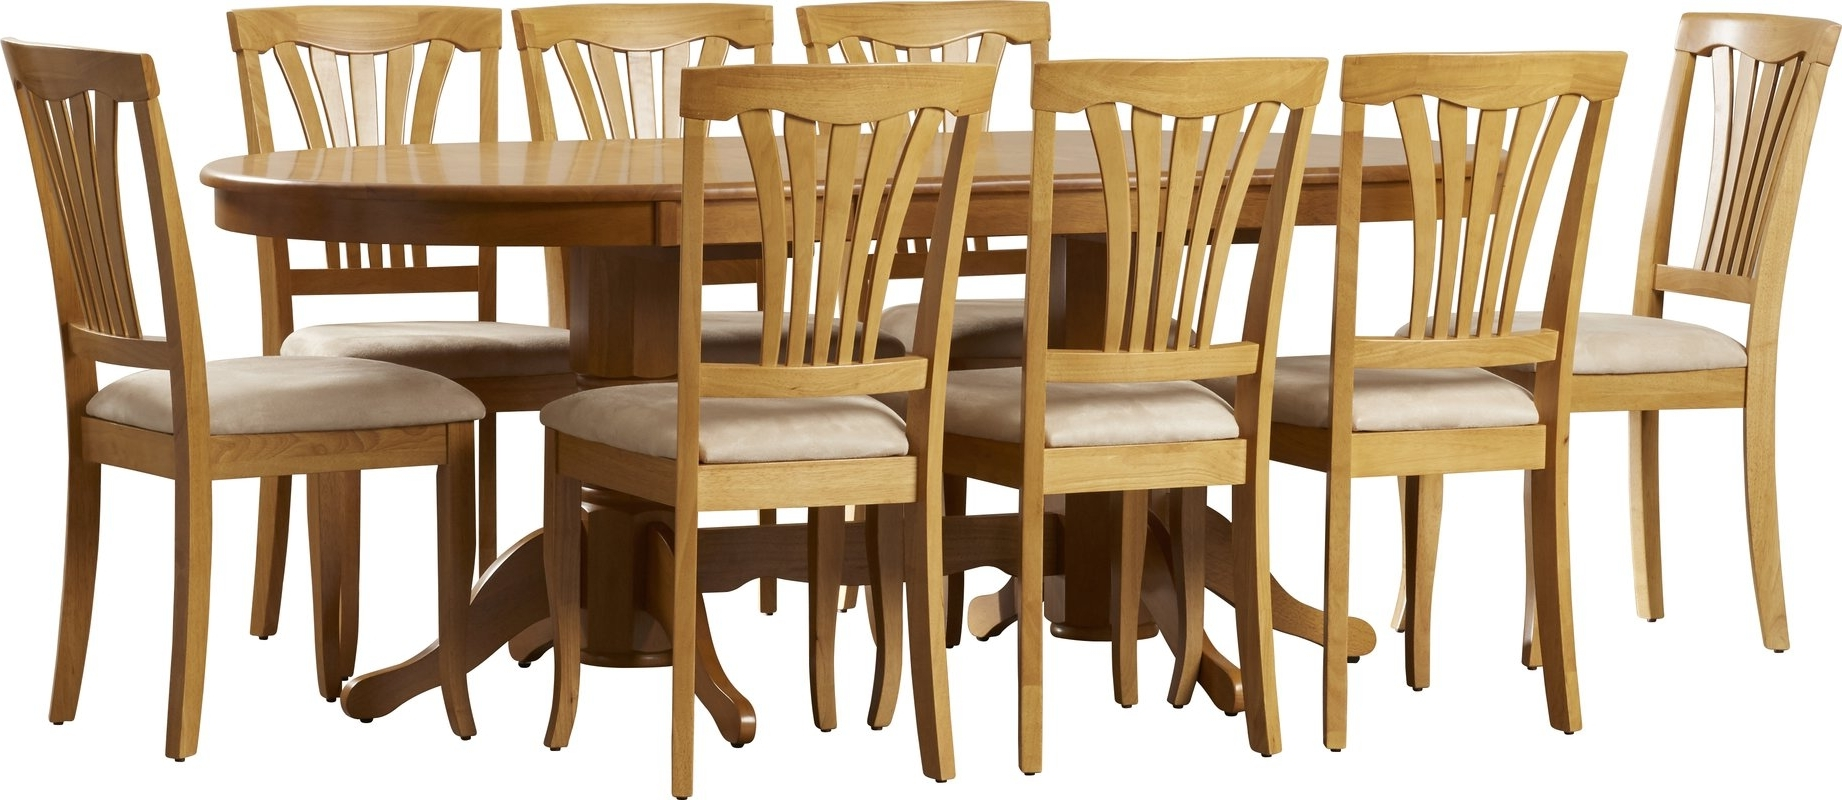 [%100+ [ 9 Piece Dining Room Sets ] | 100 9 Pc Dining Room Sets Lark Pertaining To Favorite Caira 9 Piece Extension Dining Sets With Diamond Back Chairs|Caira 9 Piece Extension Dining Sets With Diamond Back Chairs With Regard To Newest 100+ [ 9 Piece Dining Room Sets ] | 100 9 Pc Dining Room Sets Lark|Well Known Caira 9 Piece Extension Dining Sets With Diamond Back Chairs Inside 100+ [ 9 Piece Dining Room Sets ] | 100 9 Pc Dining Room Sets Lark|Well Known 100+ [ 9 Piece Dining Room Sets ] | 100 9 Pc Dining Room Sets Lark Regarding Caira 9 Piece Extension Dining Sets With Diamond Back Chairs%] (View 1 of 25)